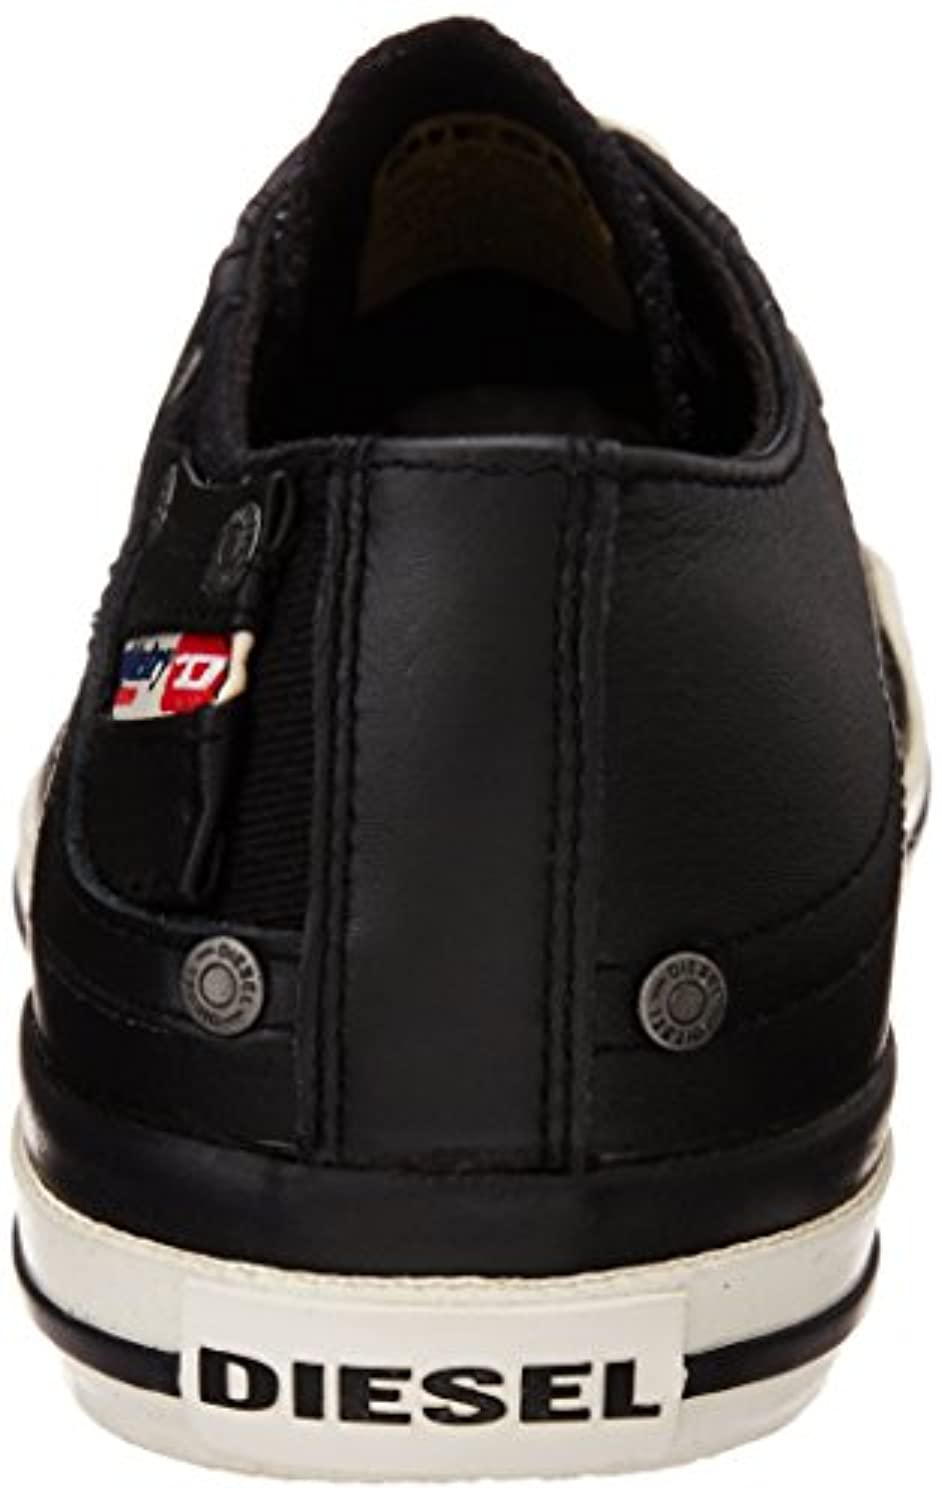 Diesel EXPOSURE LOW I Y00321 PR052 MAGNETE T8013 shoes black